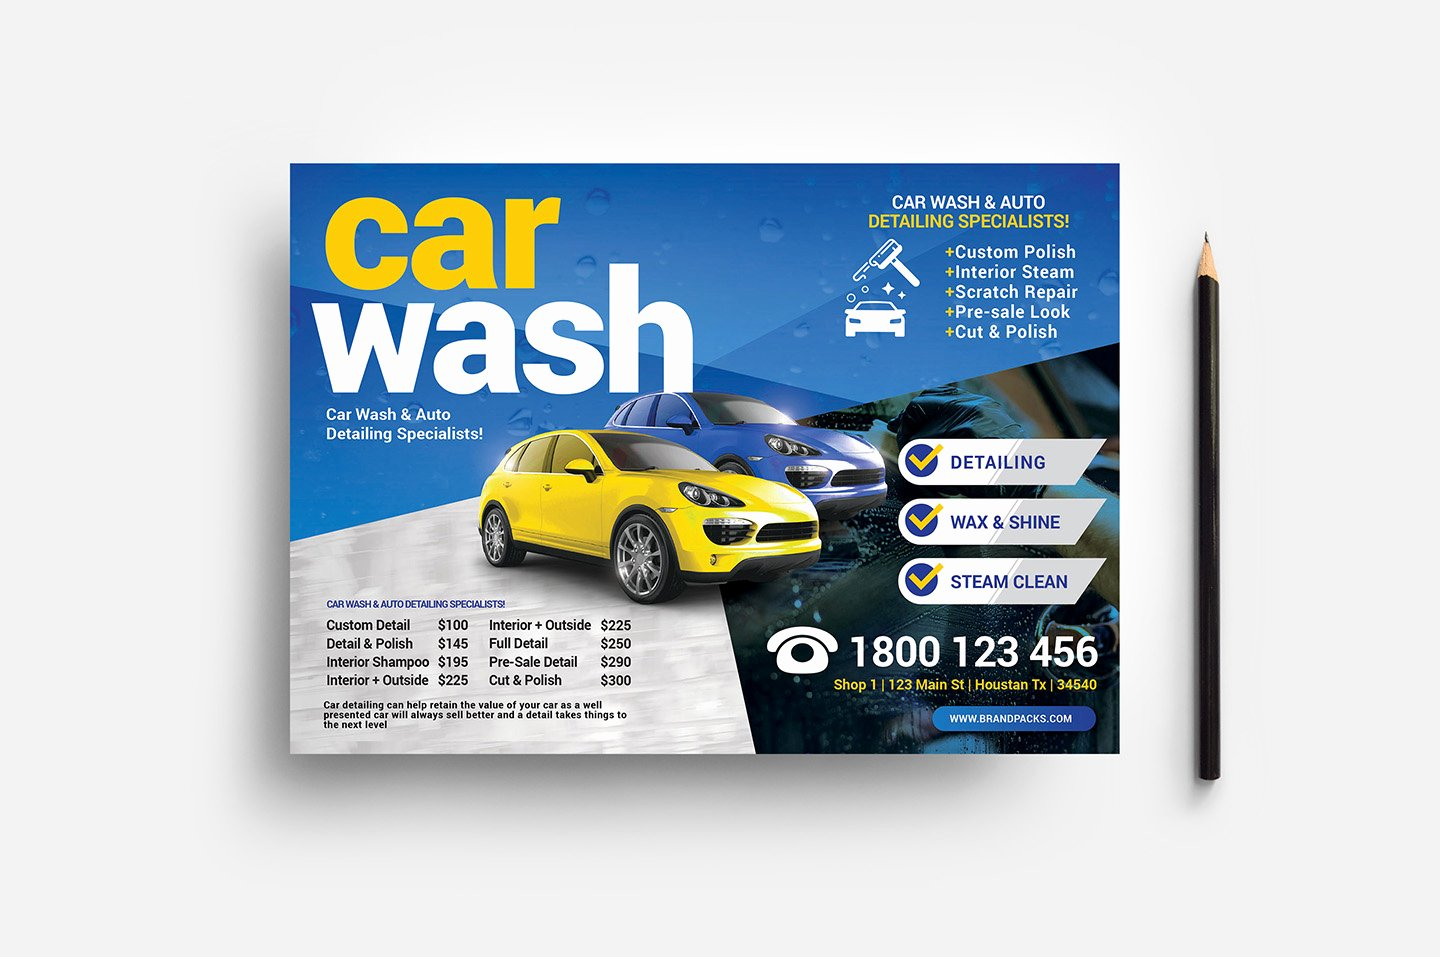 Car Wash Flyer Template Beautiful Car Wash Flyer Template V2 Psd Ai & Vector Brandpacks